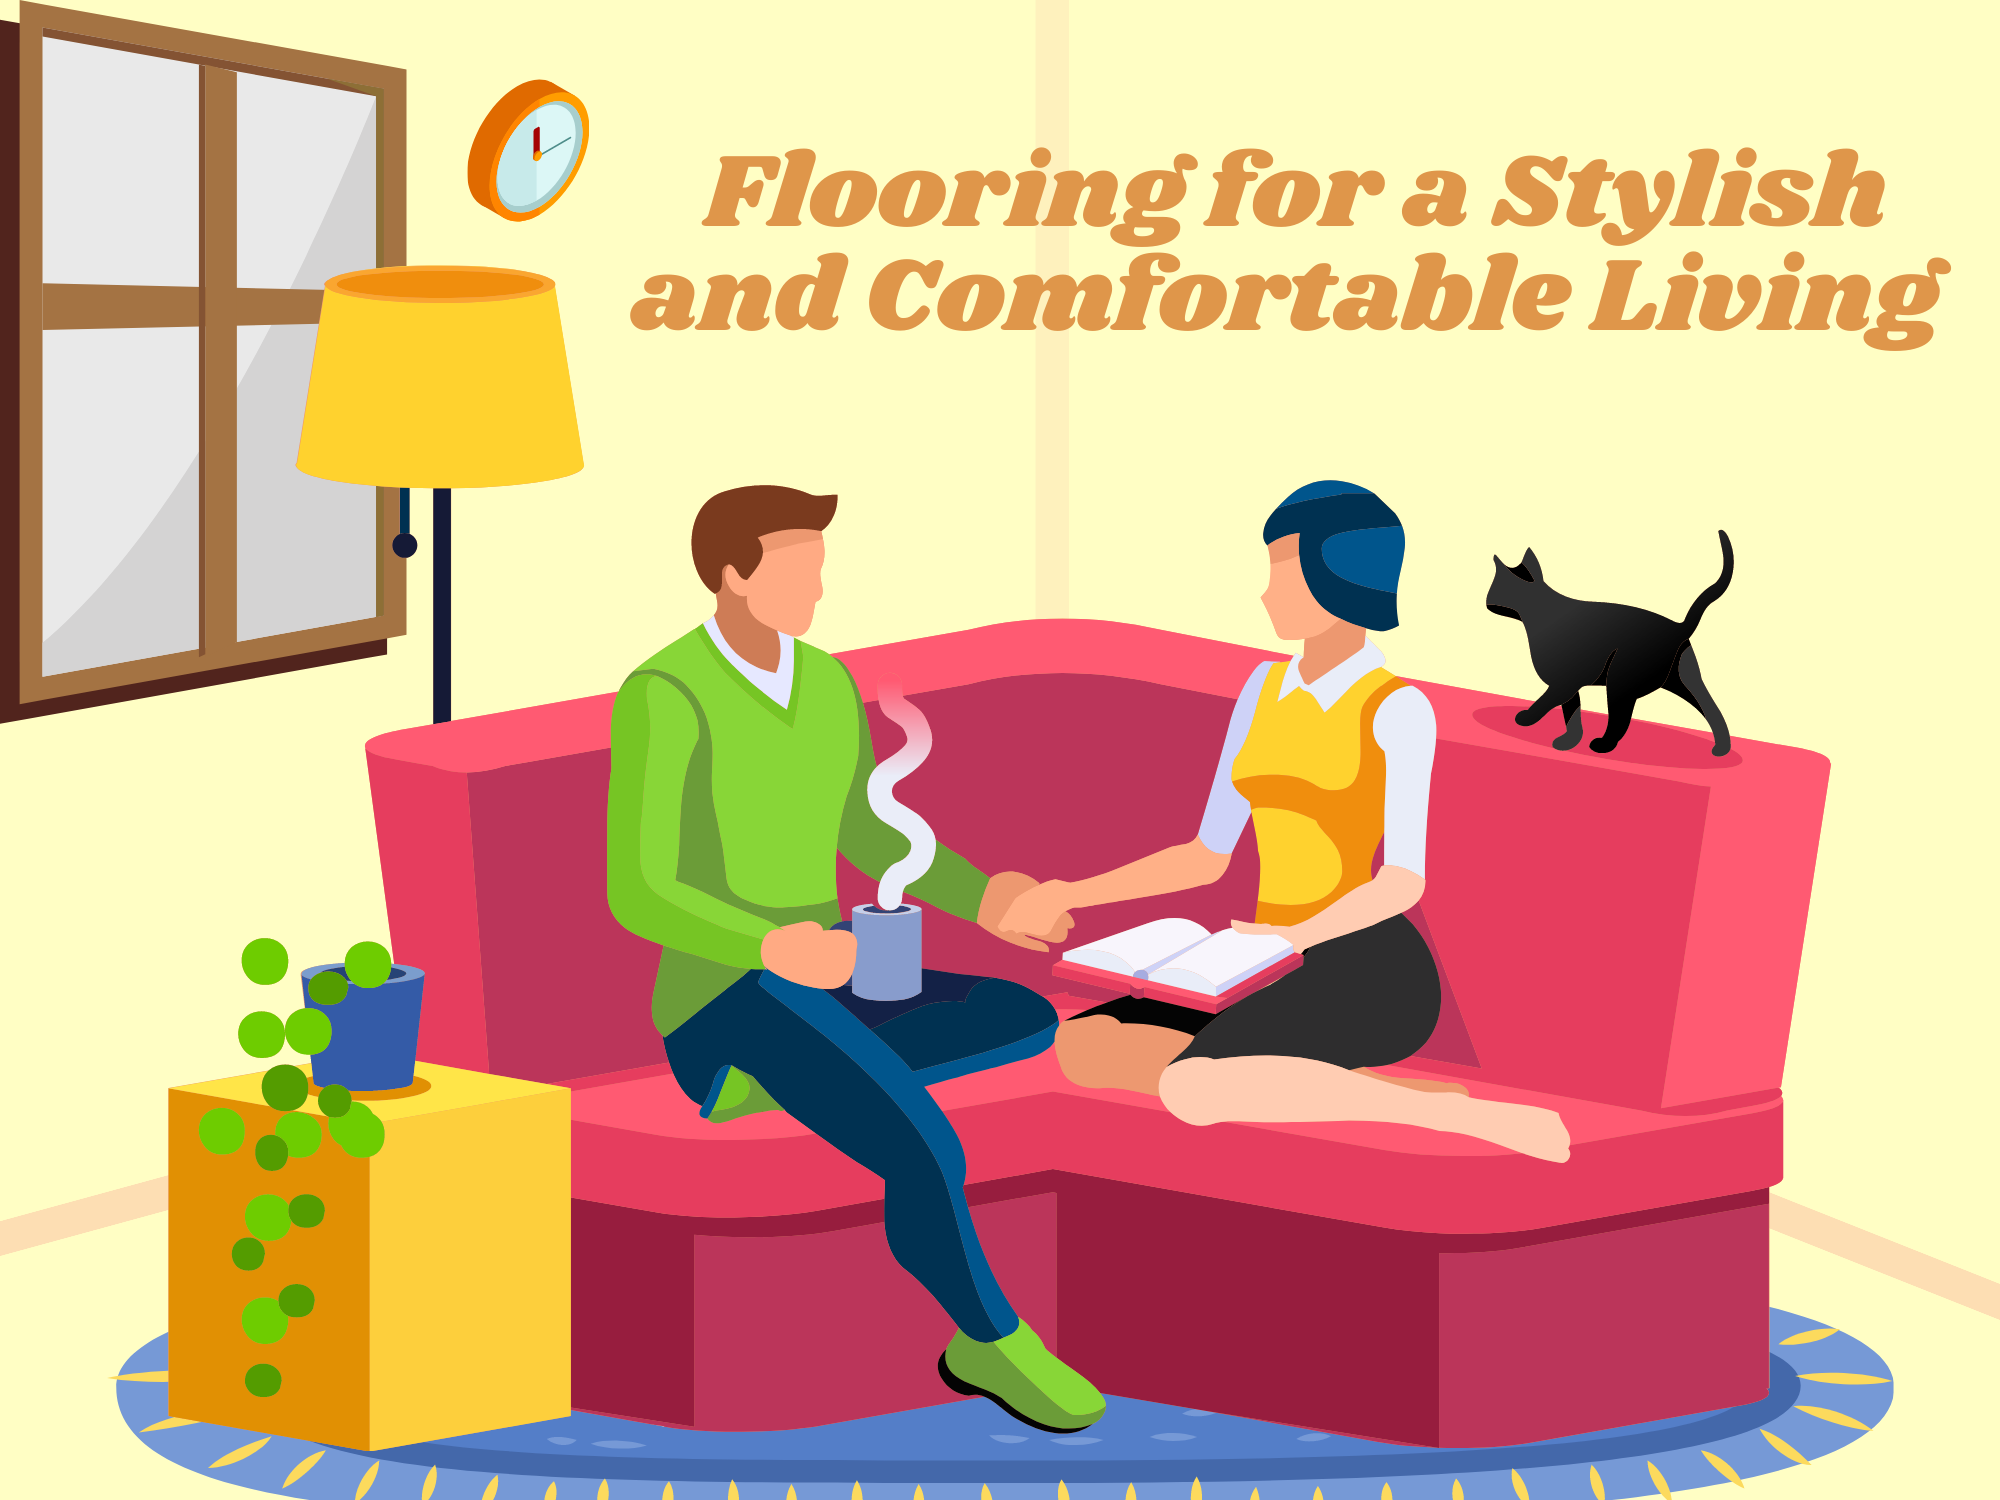 Flooring-for-a-Stylish-and-Comfortable-Living